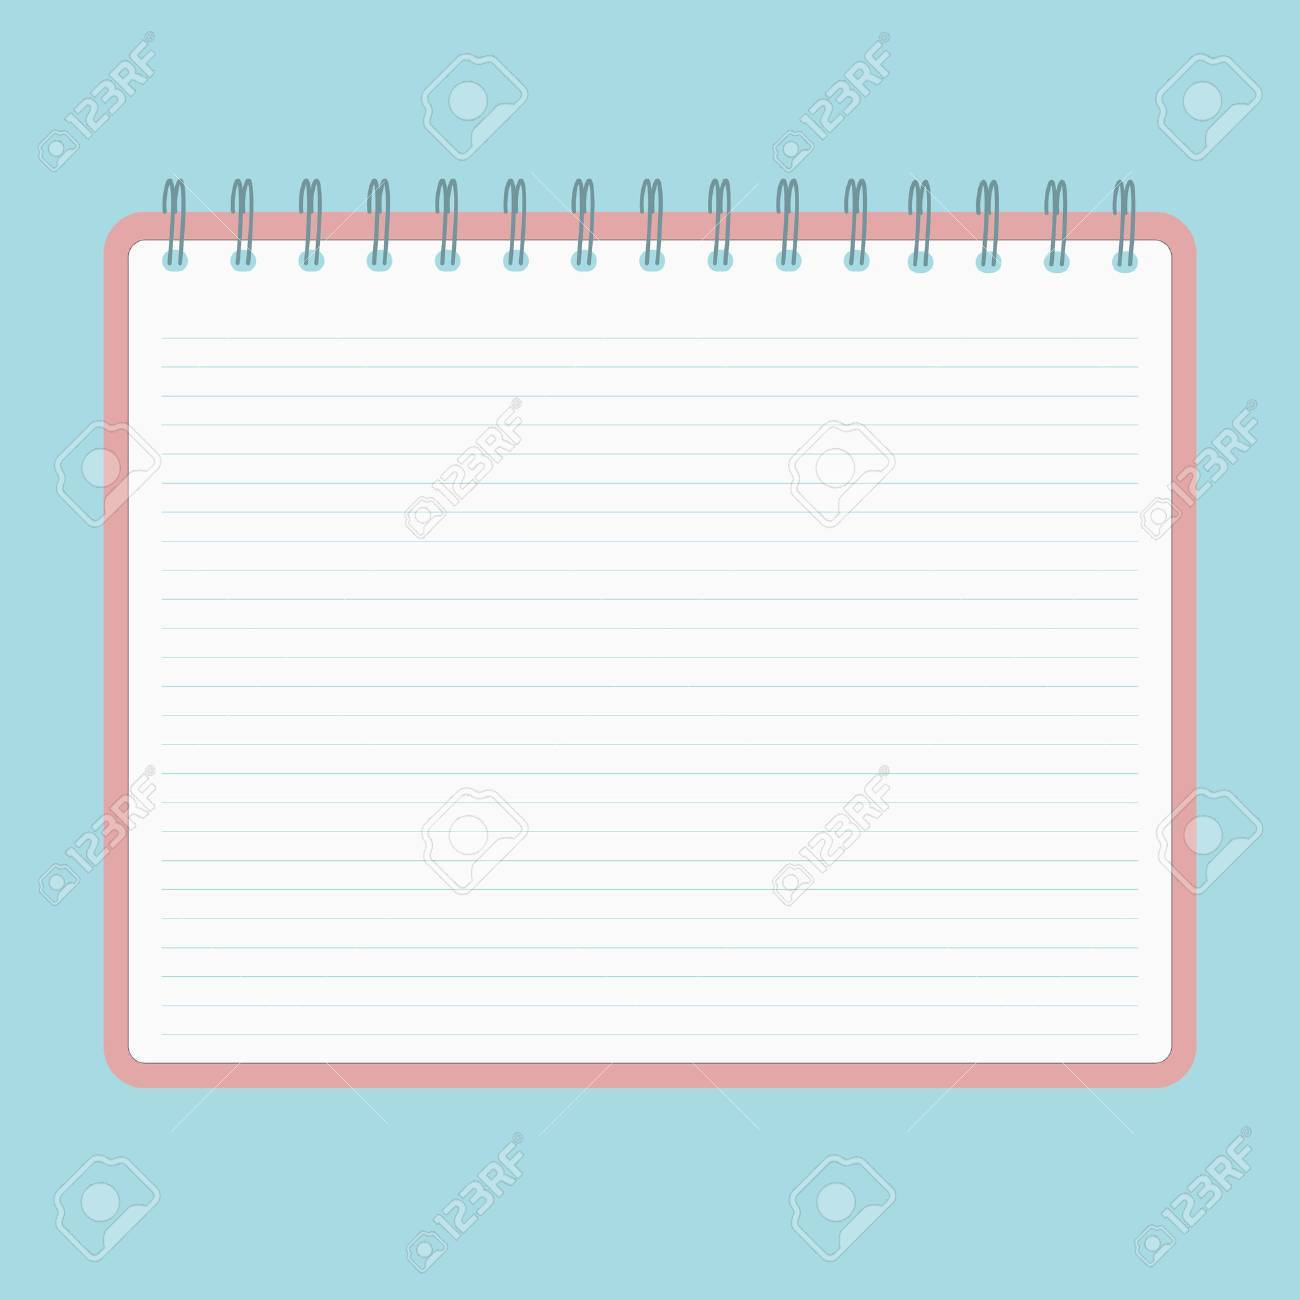 spiral notebook with lined sheets royalty free cliparts, vectors